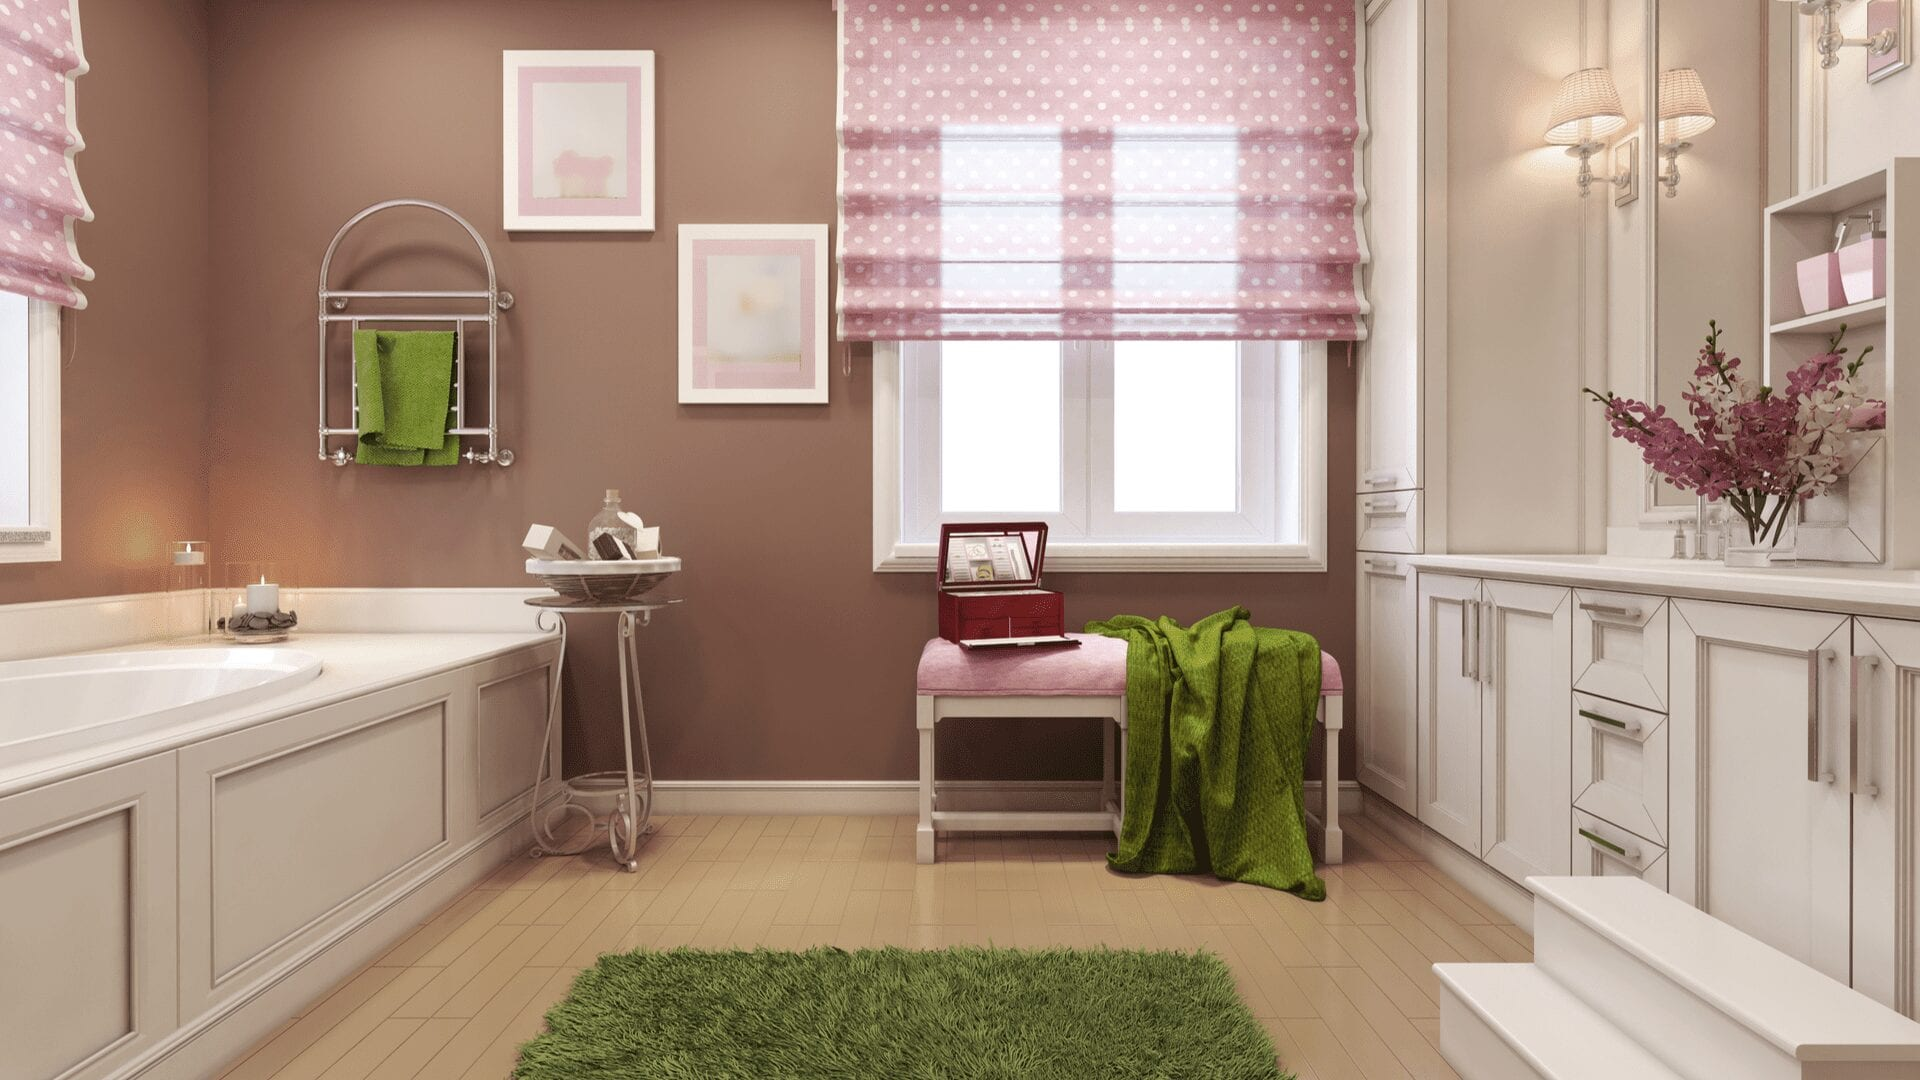 Color used to highlight bathroom features